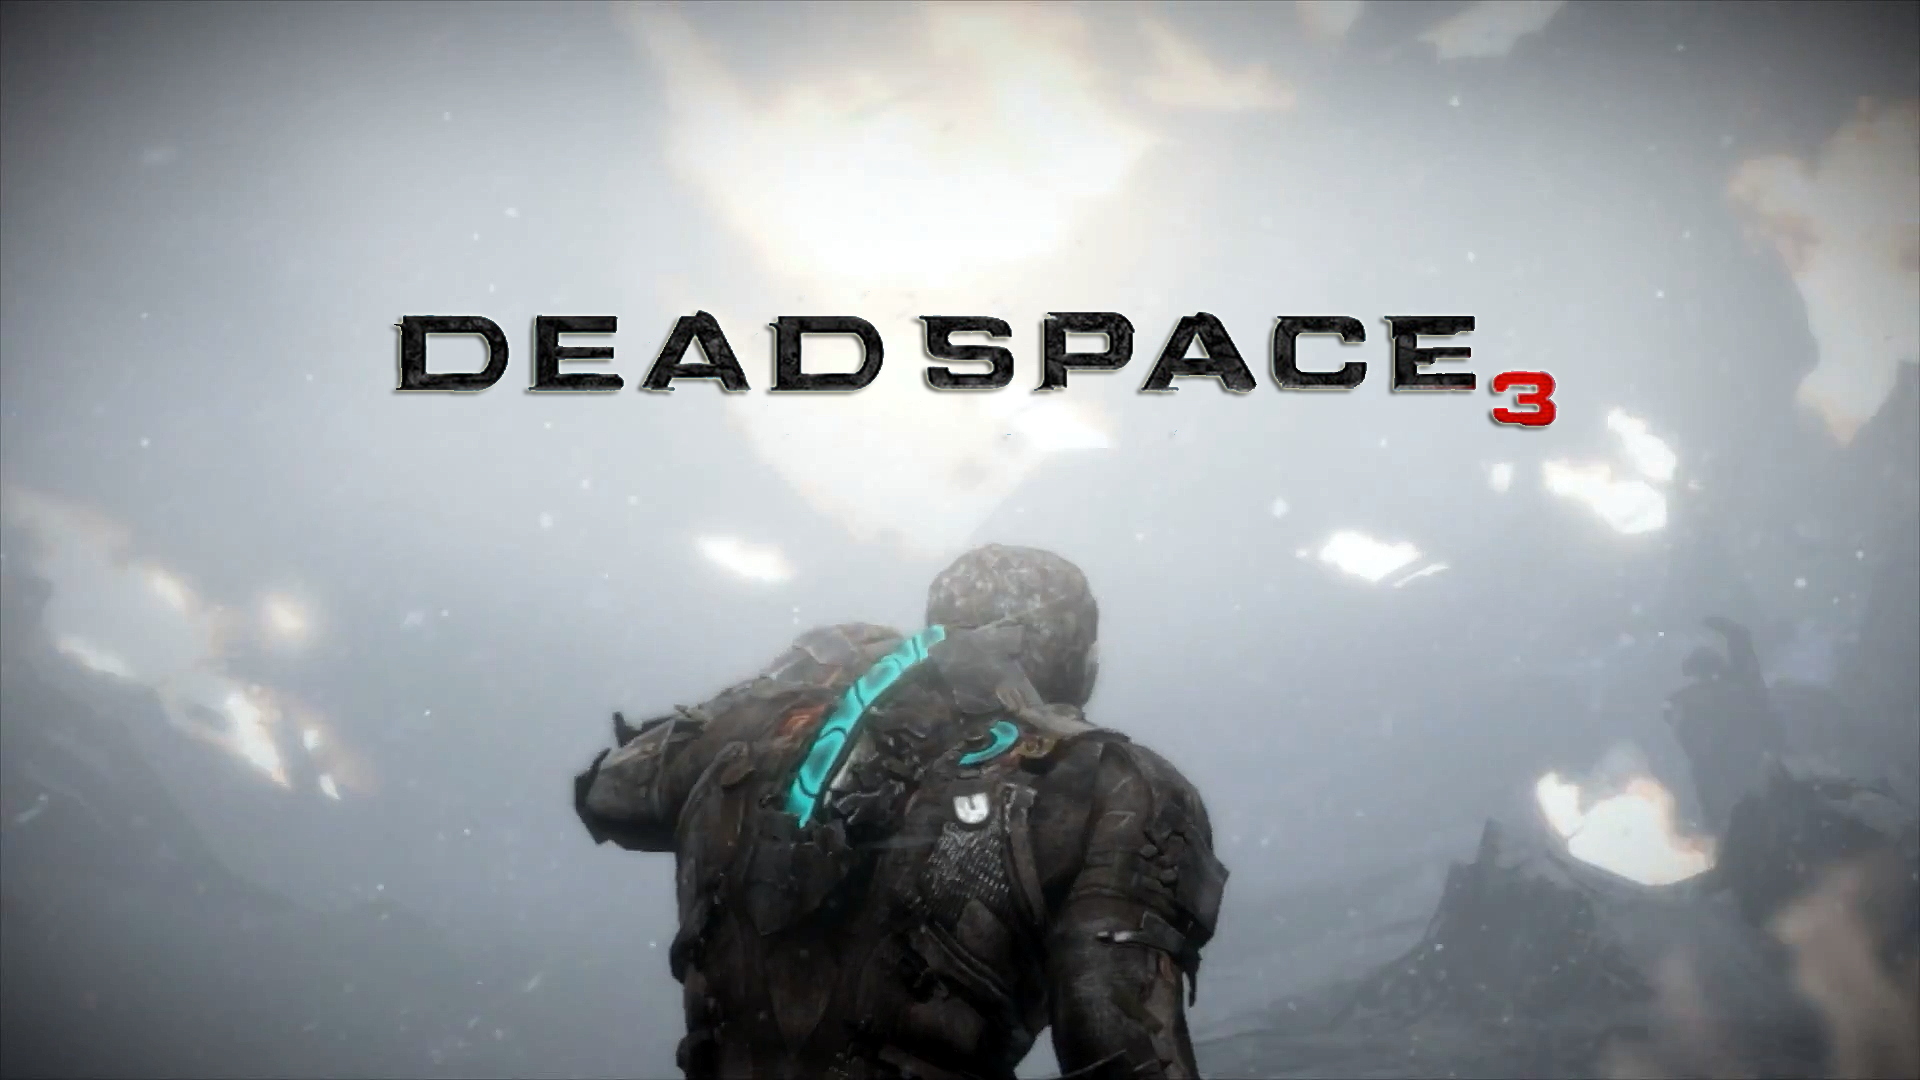 Dead Space 3 Wallpaper Backgrounds